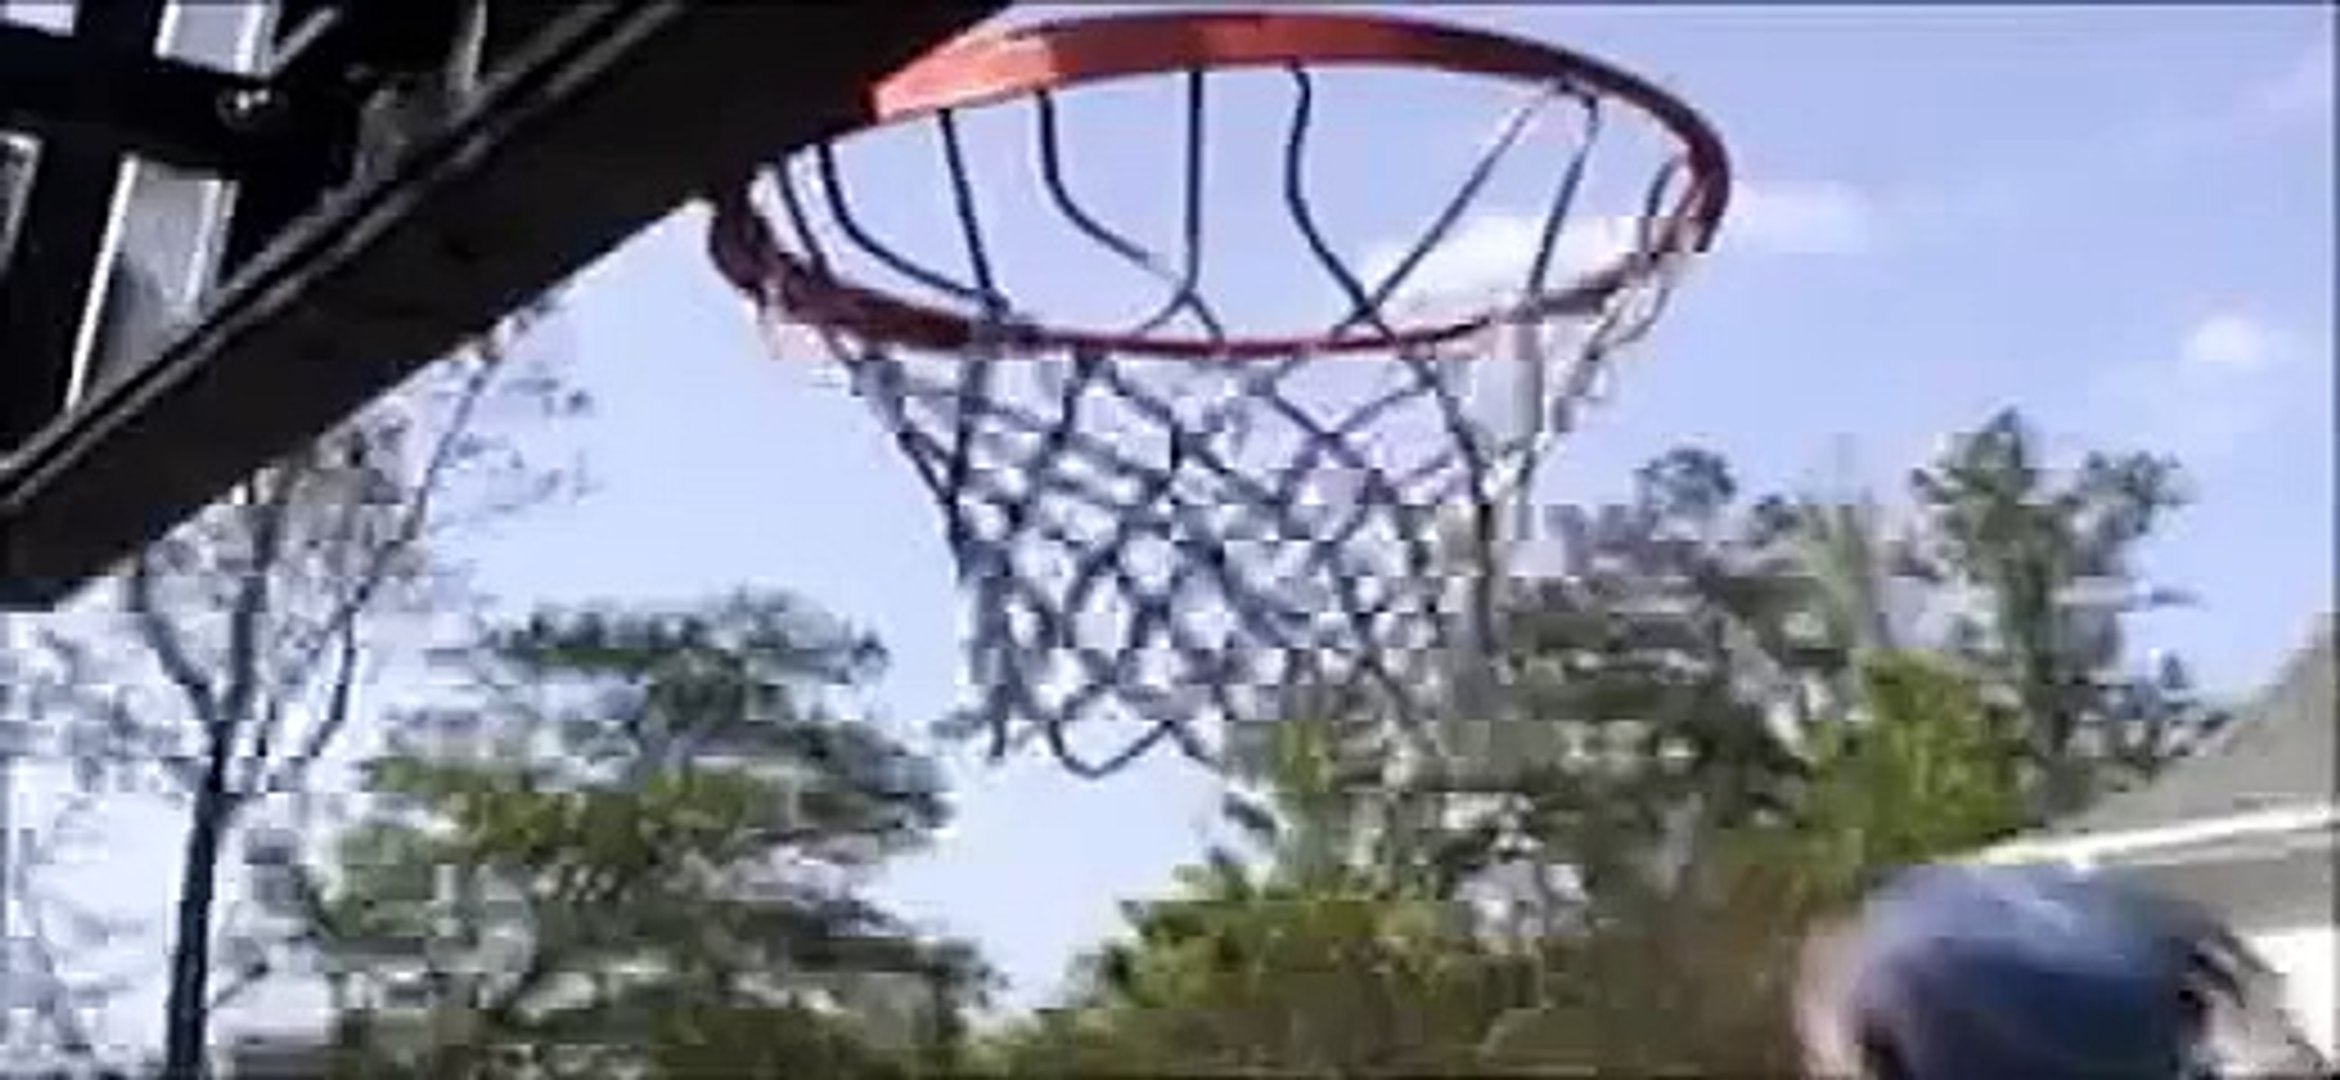 Old School bball video (my brother and I) funny stuff